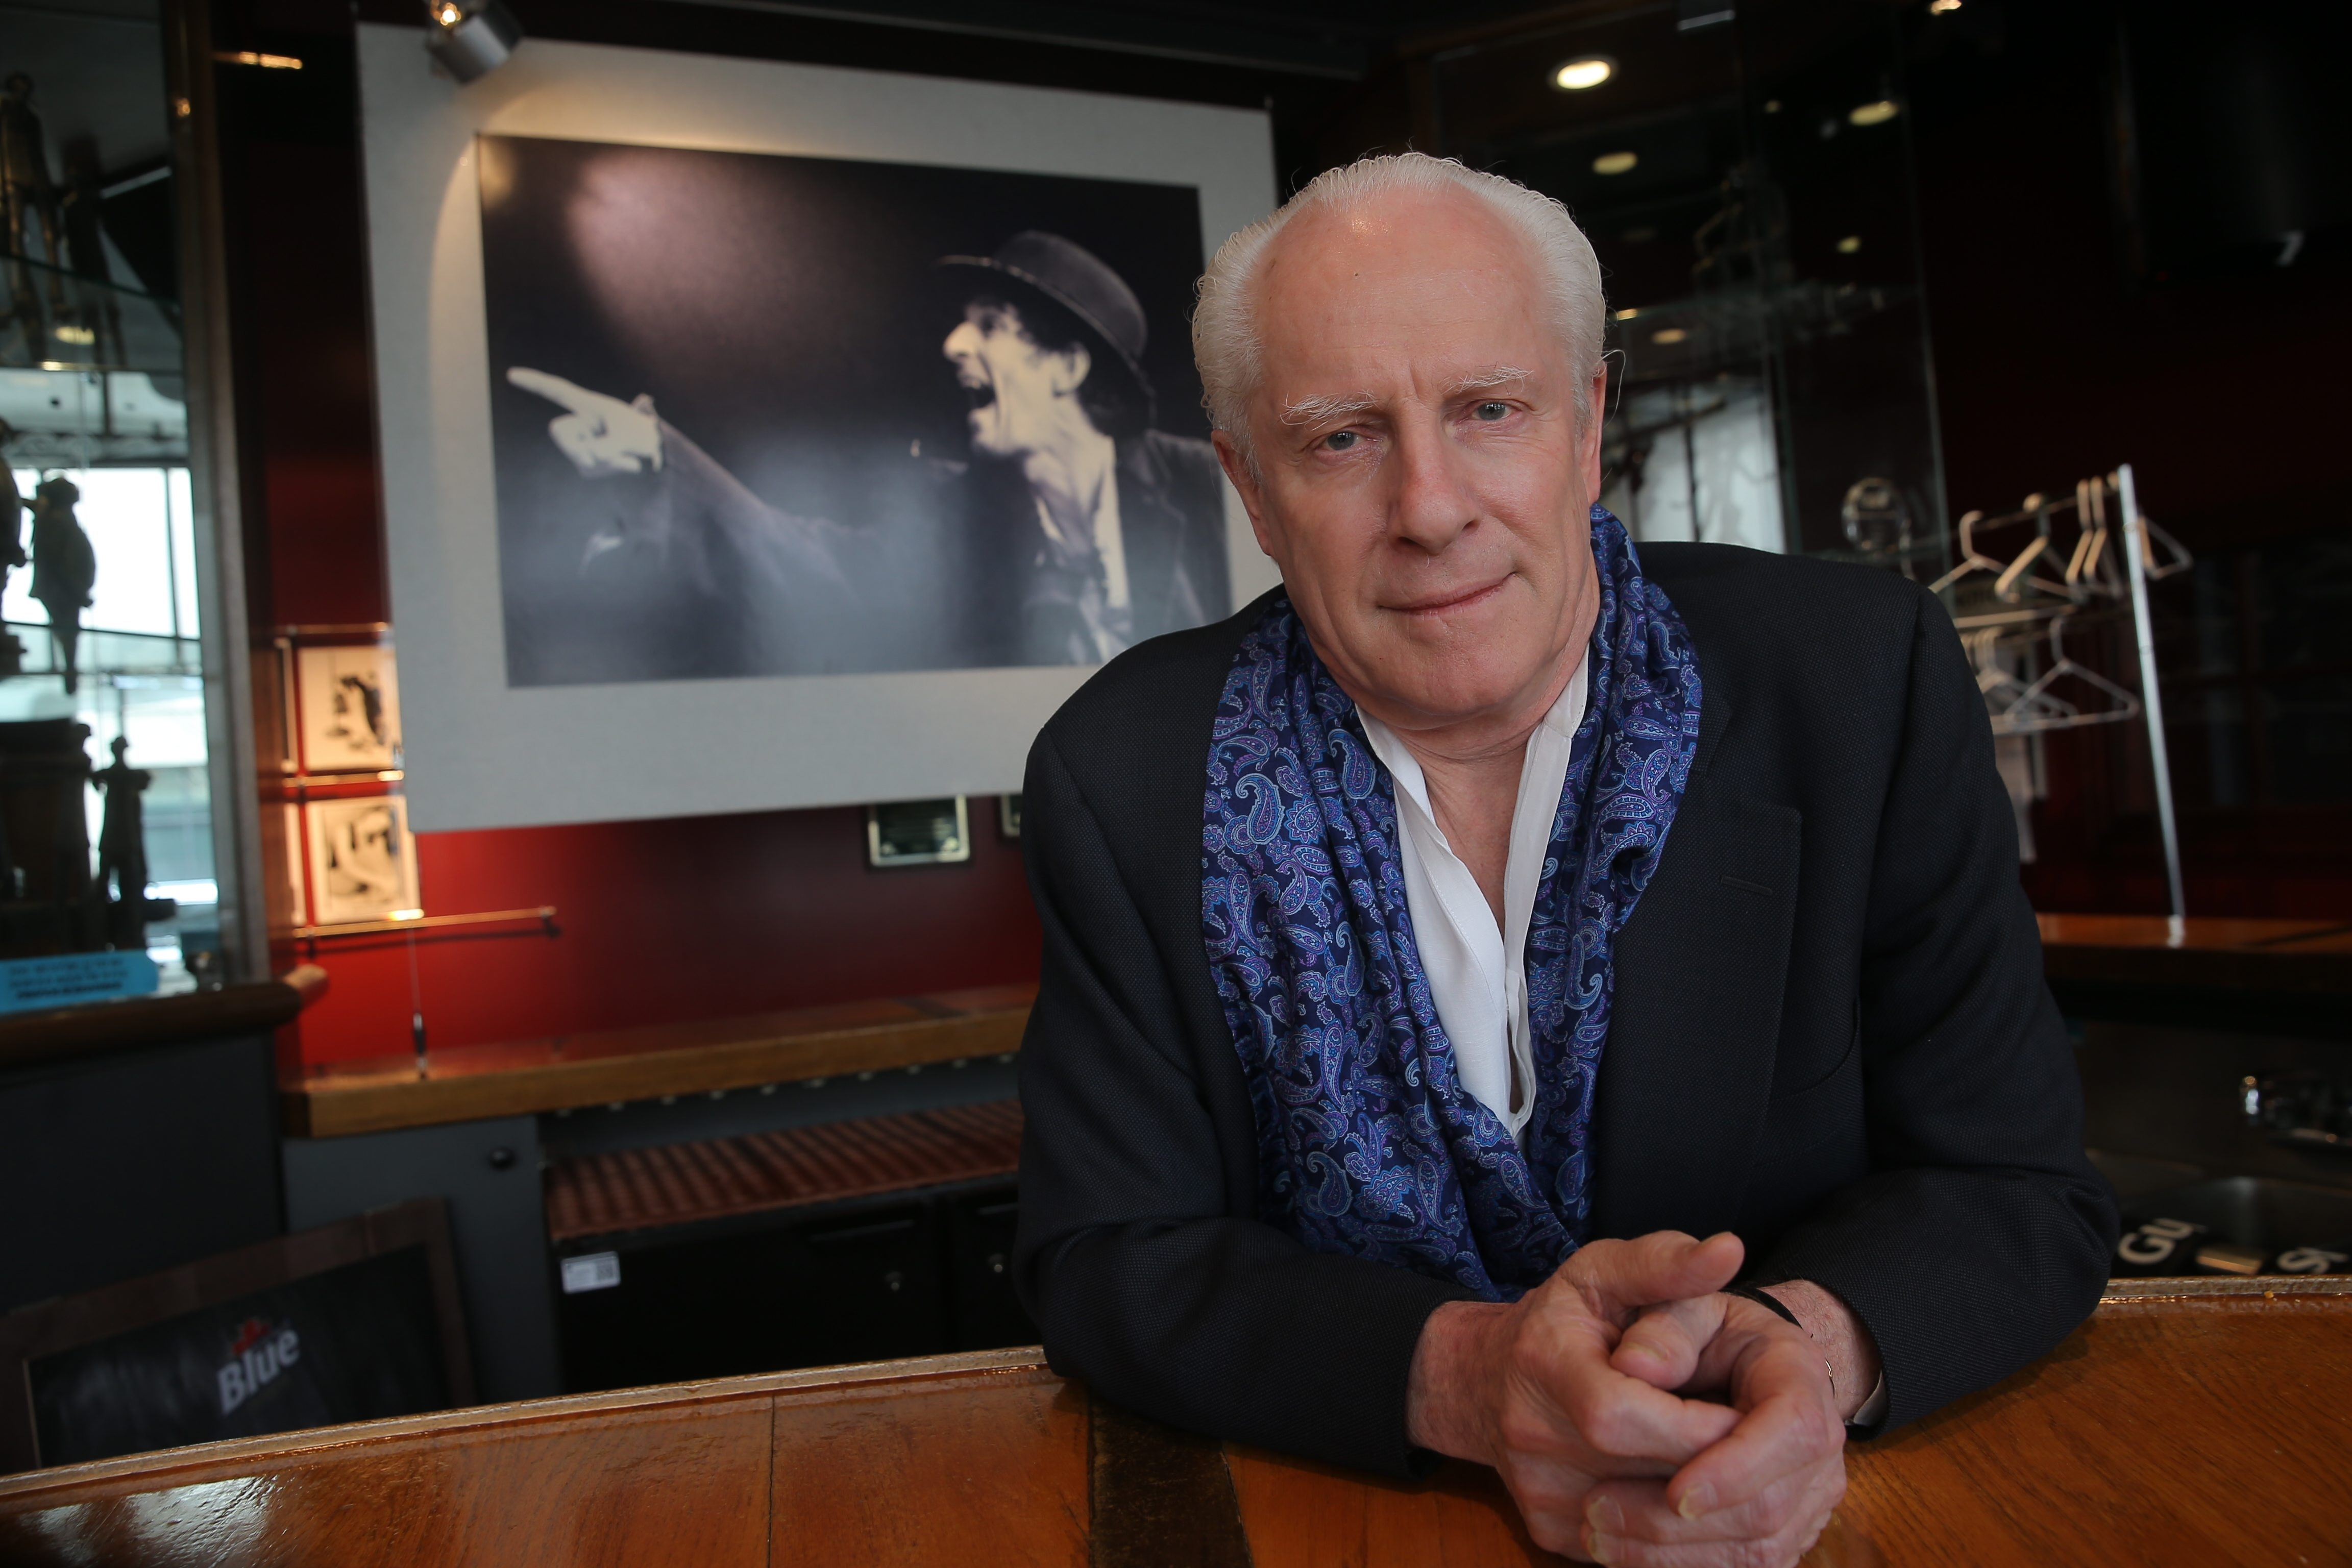 Irish Classical Theatre Company co-founder and Director Vincent O'Neill, behind the bar at the Chris O'Neill Lounge, has helped fuel the growth of Buffalo's theater scene.